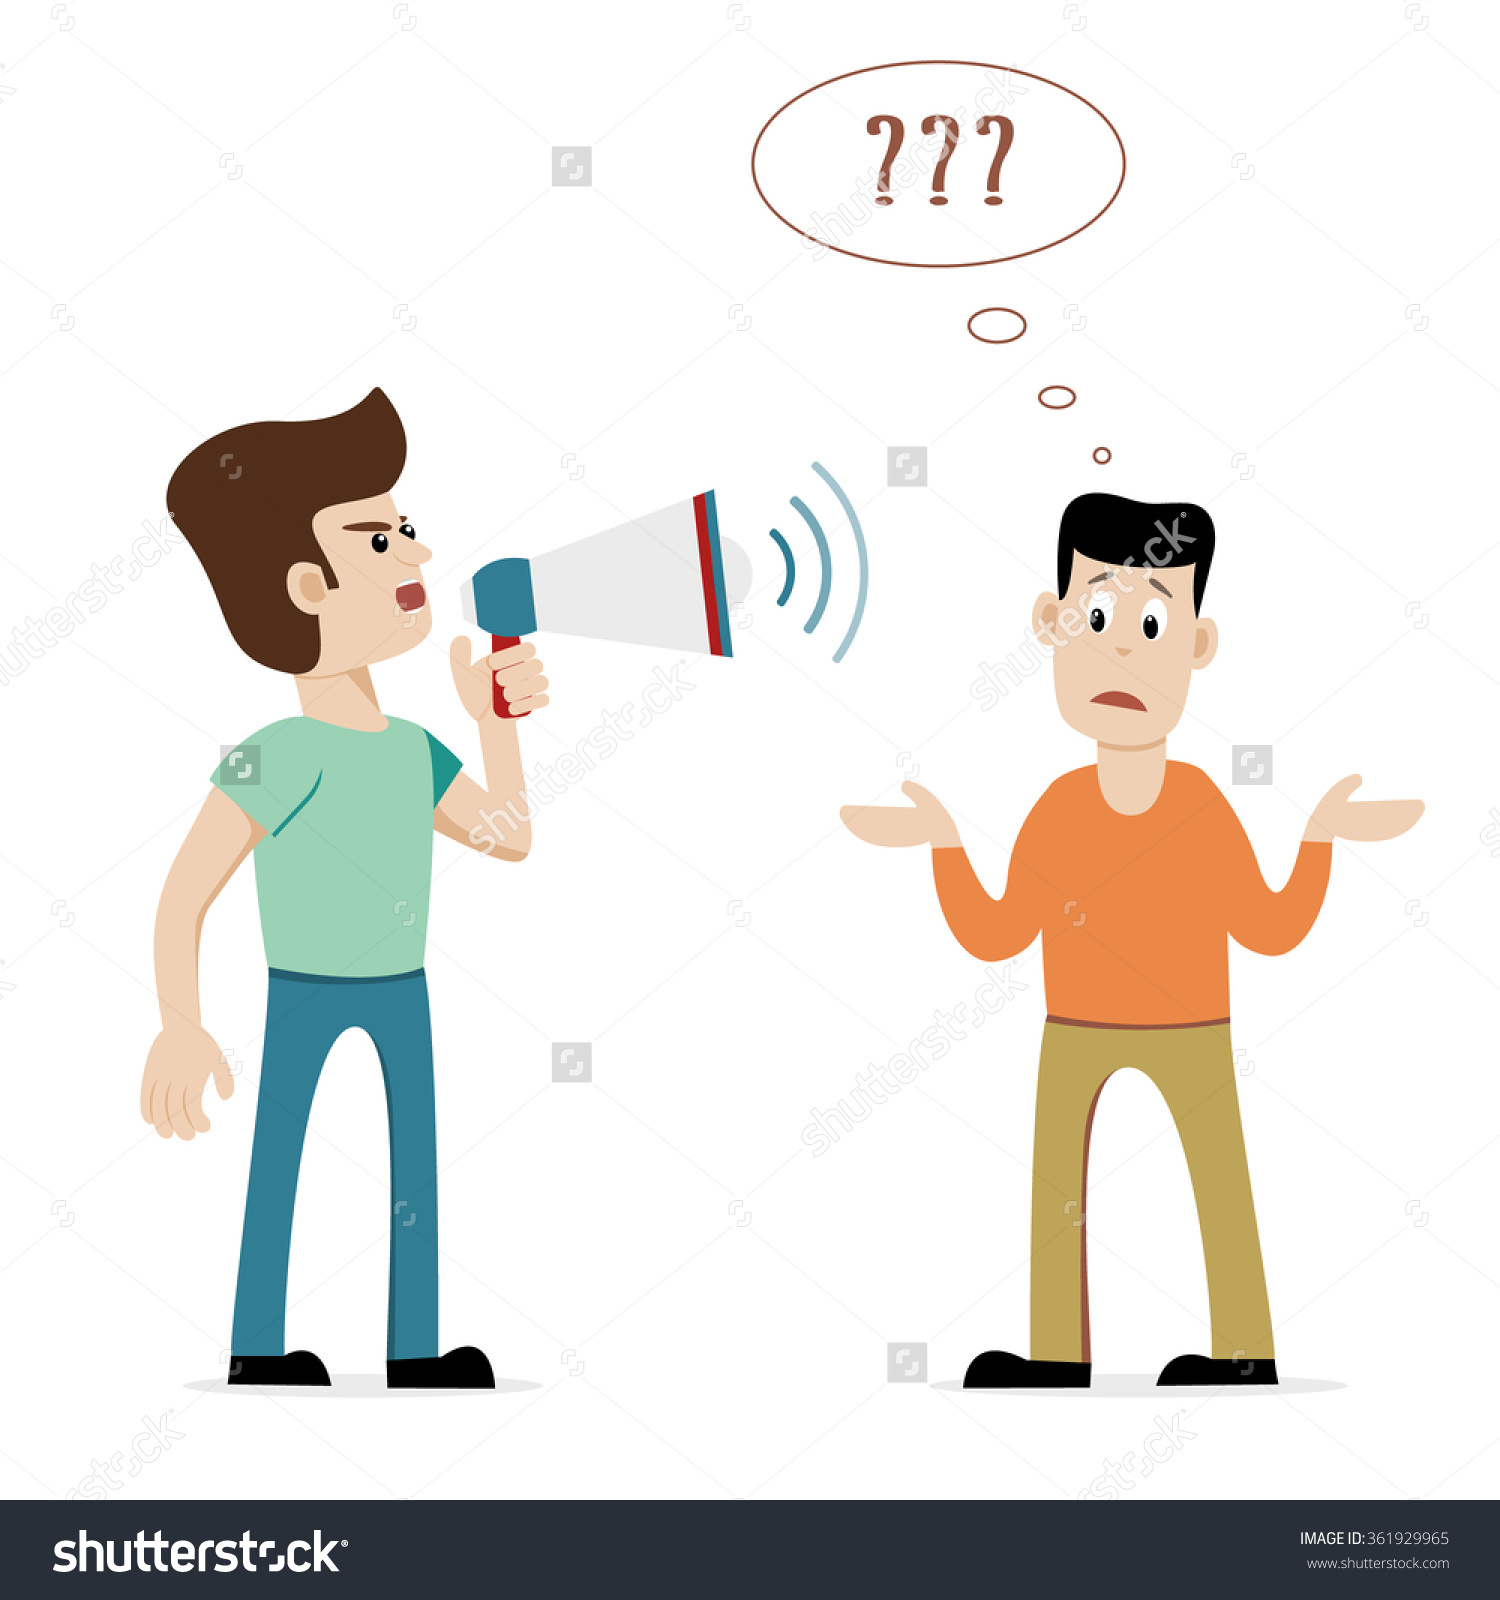 Man Megaphone Shouting Hearing Impaired Shrugging Stock Vector.